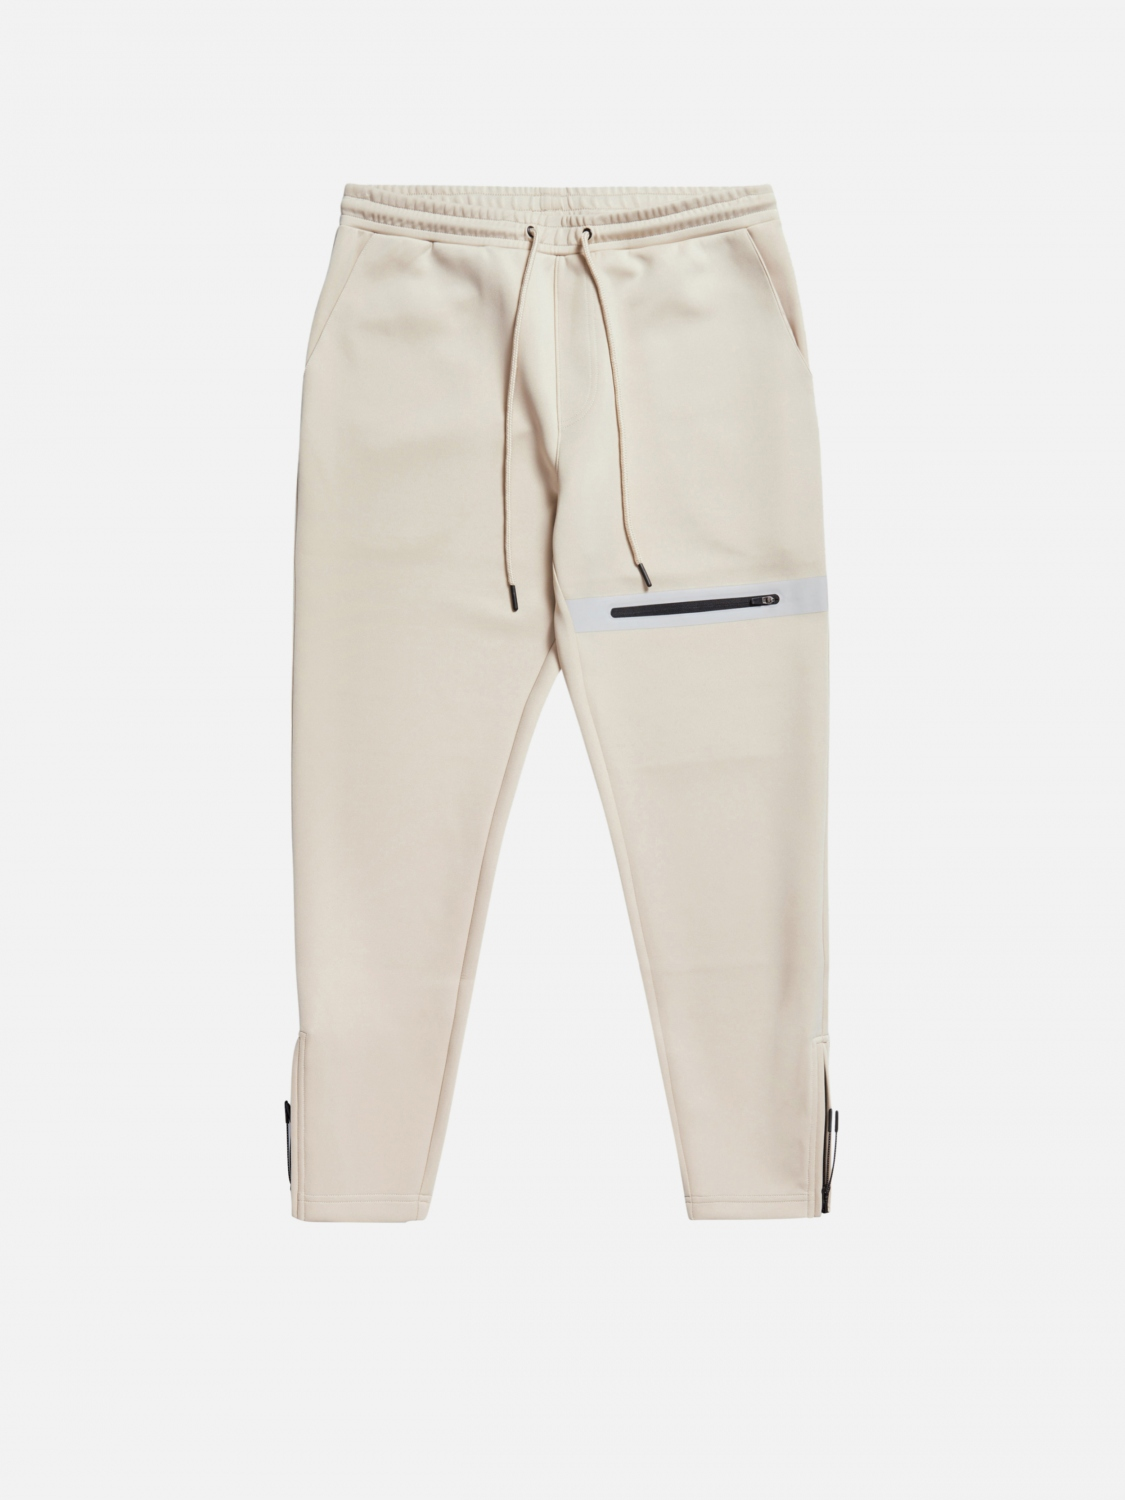 jubilee pant - taupe